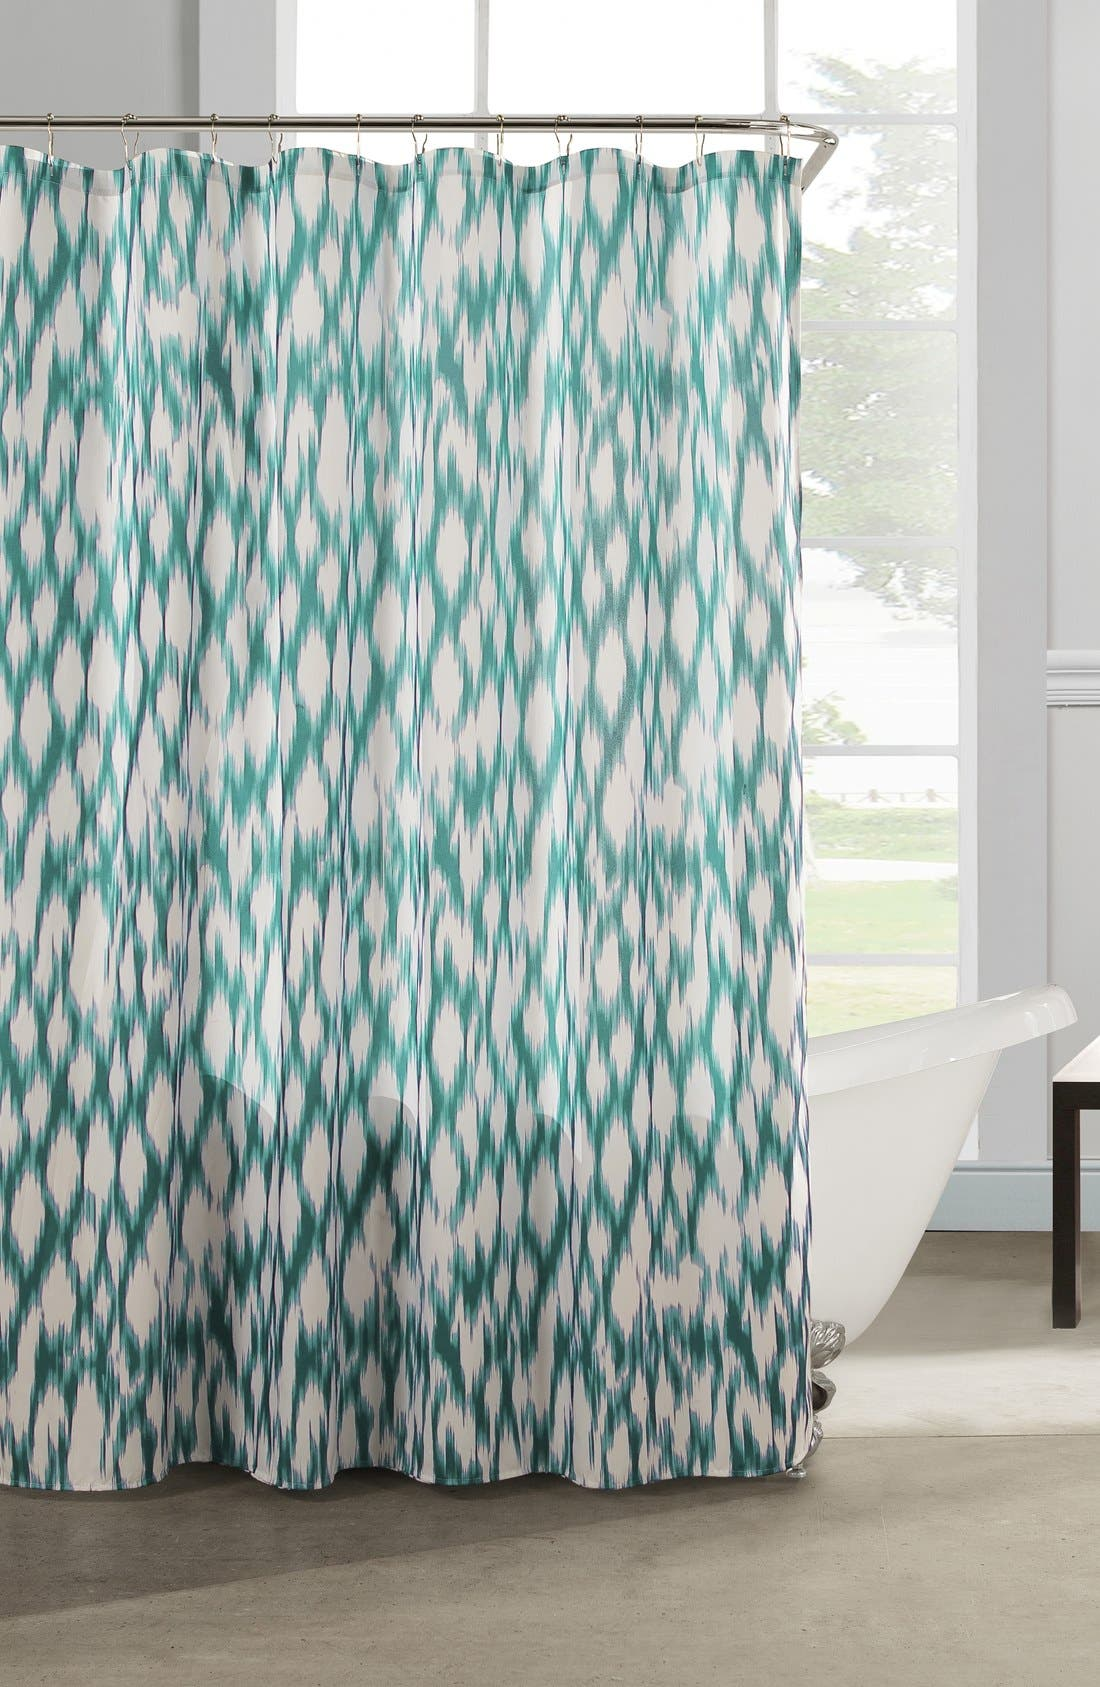 Coral and aqua shower curtain - Coral And Aqua Shower Curtain